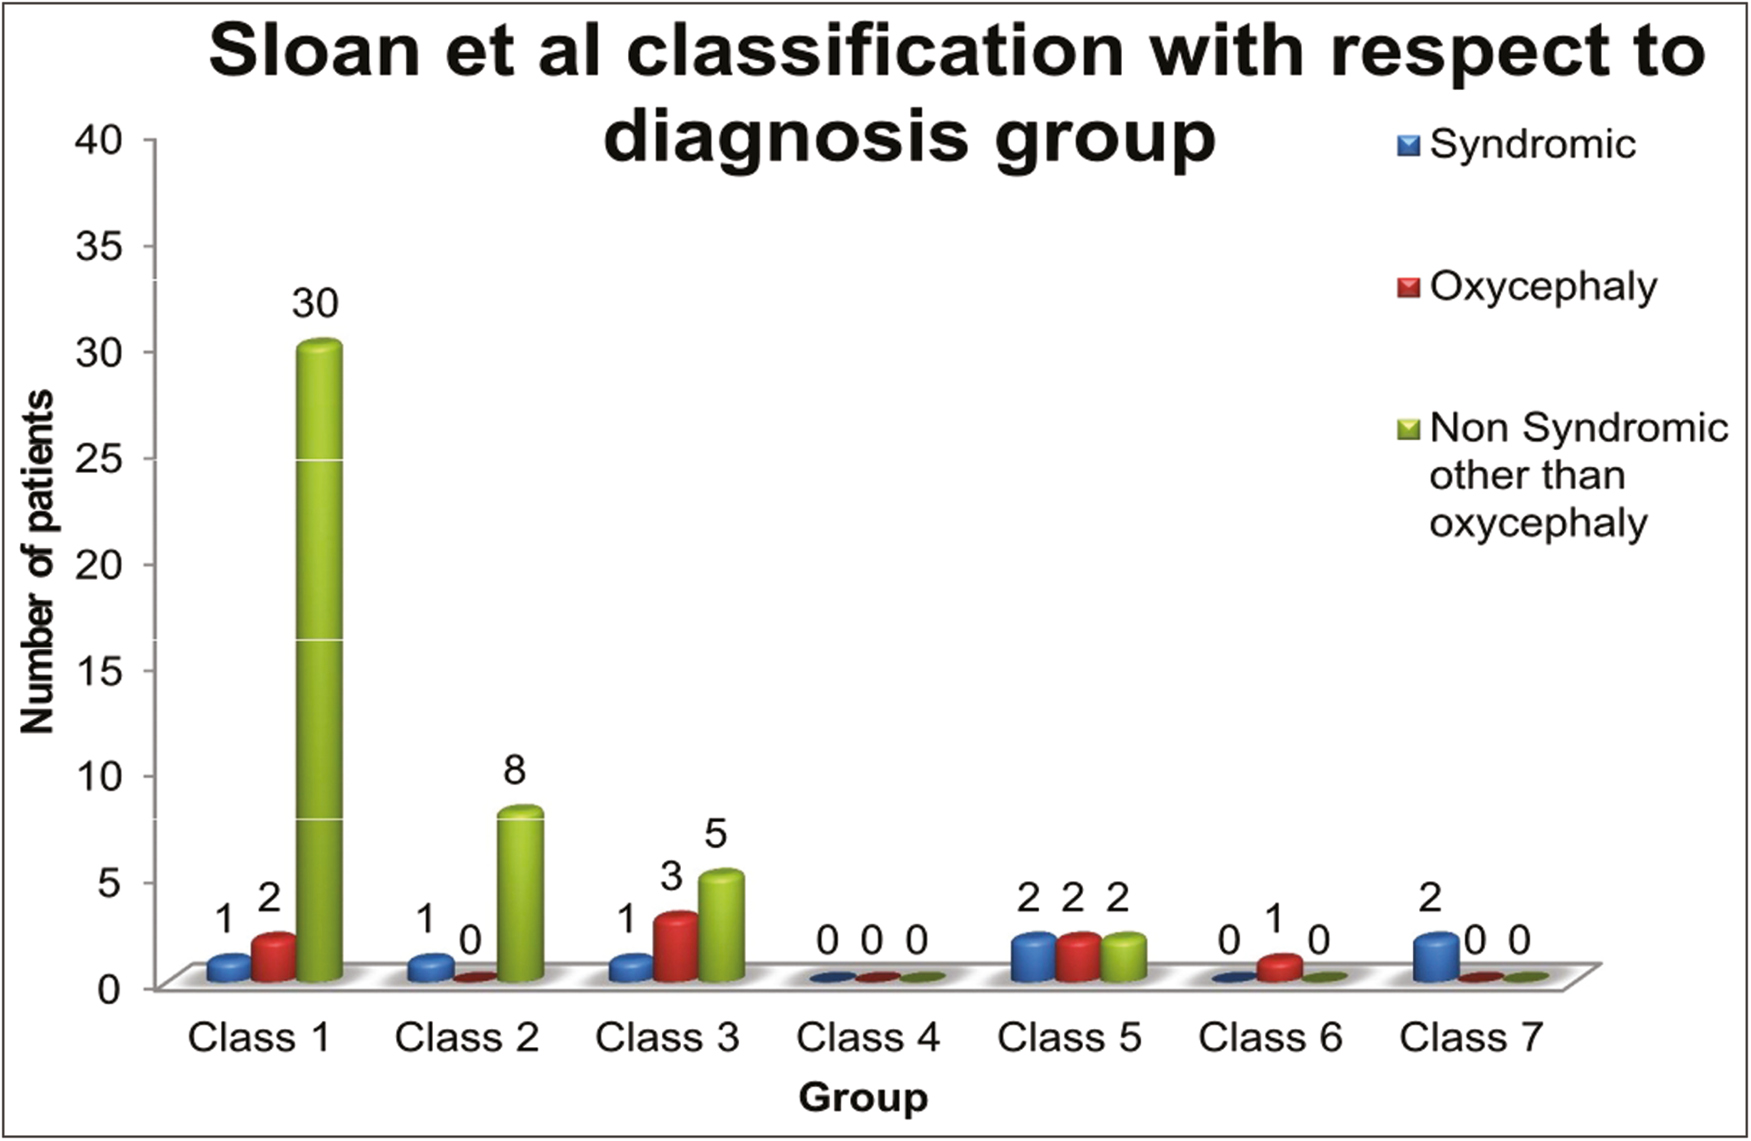 Figure 8: Graphical representation showing the number of patients in each class of Sloan <i>et al.</i>'s classification system with respect to diagnostic group